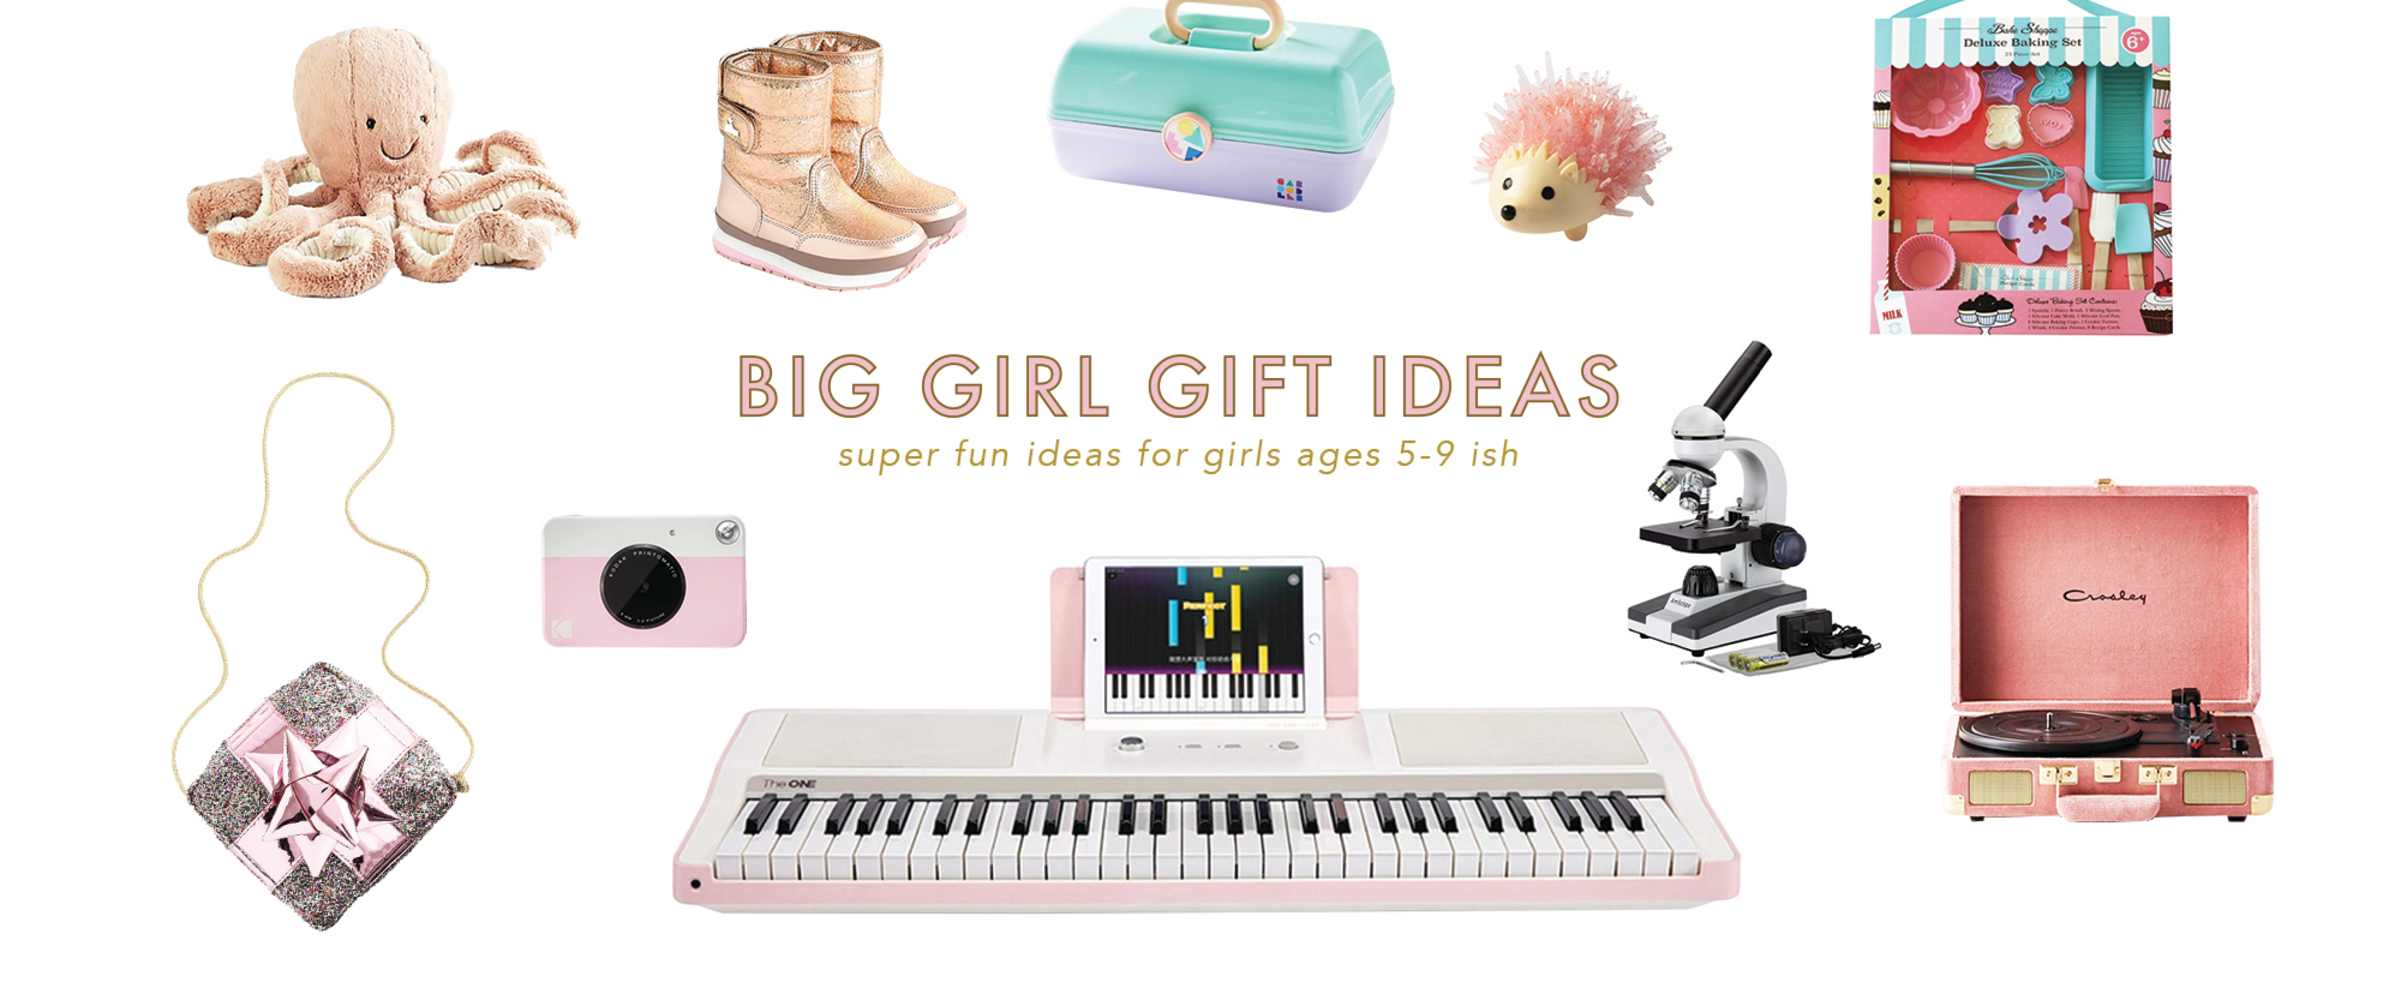 Christmas Gift Ideas For Big Girls Ages 5 9 - Lay Baby Lay